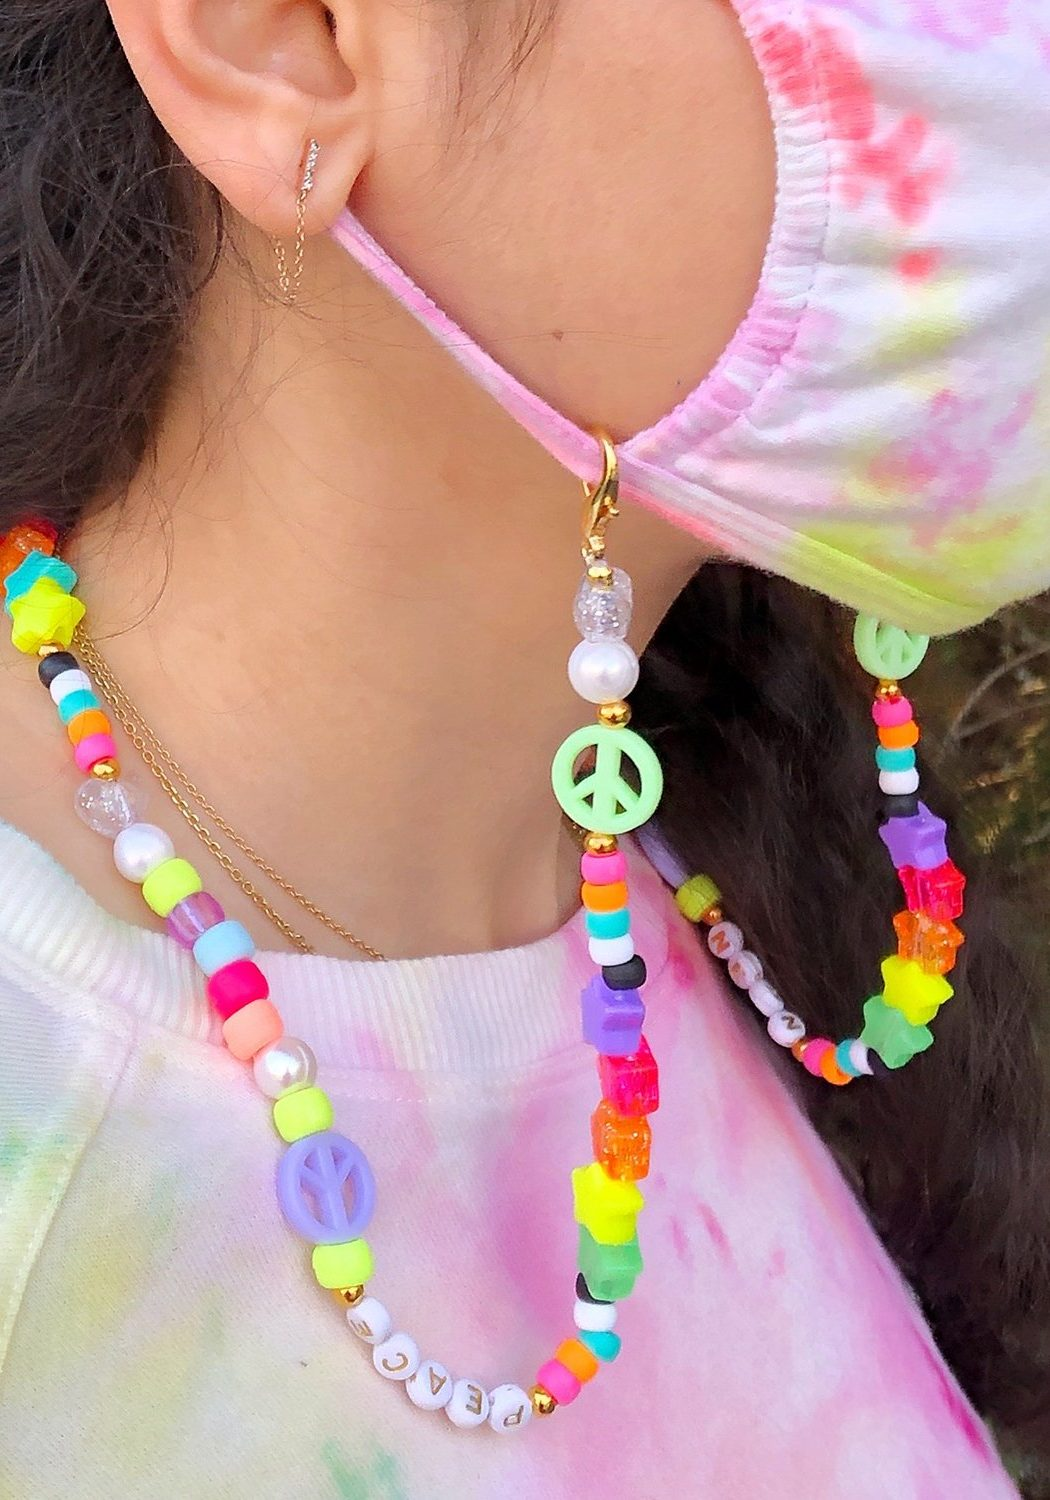 DIY Beaded Mask Chain Tutorial - The Neon Tea Party